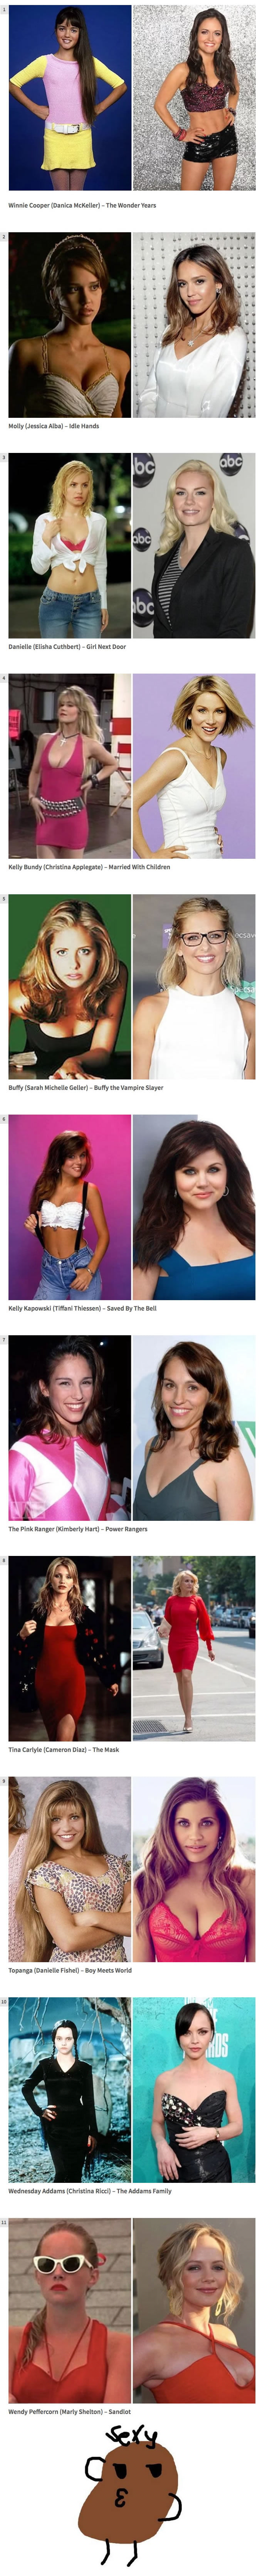 11 Boyhood crushes then and now, feel old yet ?